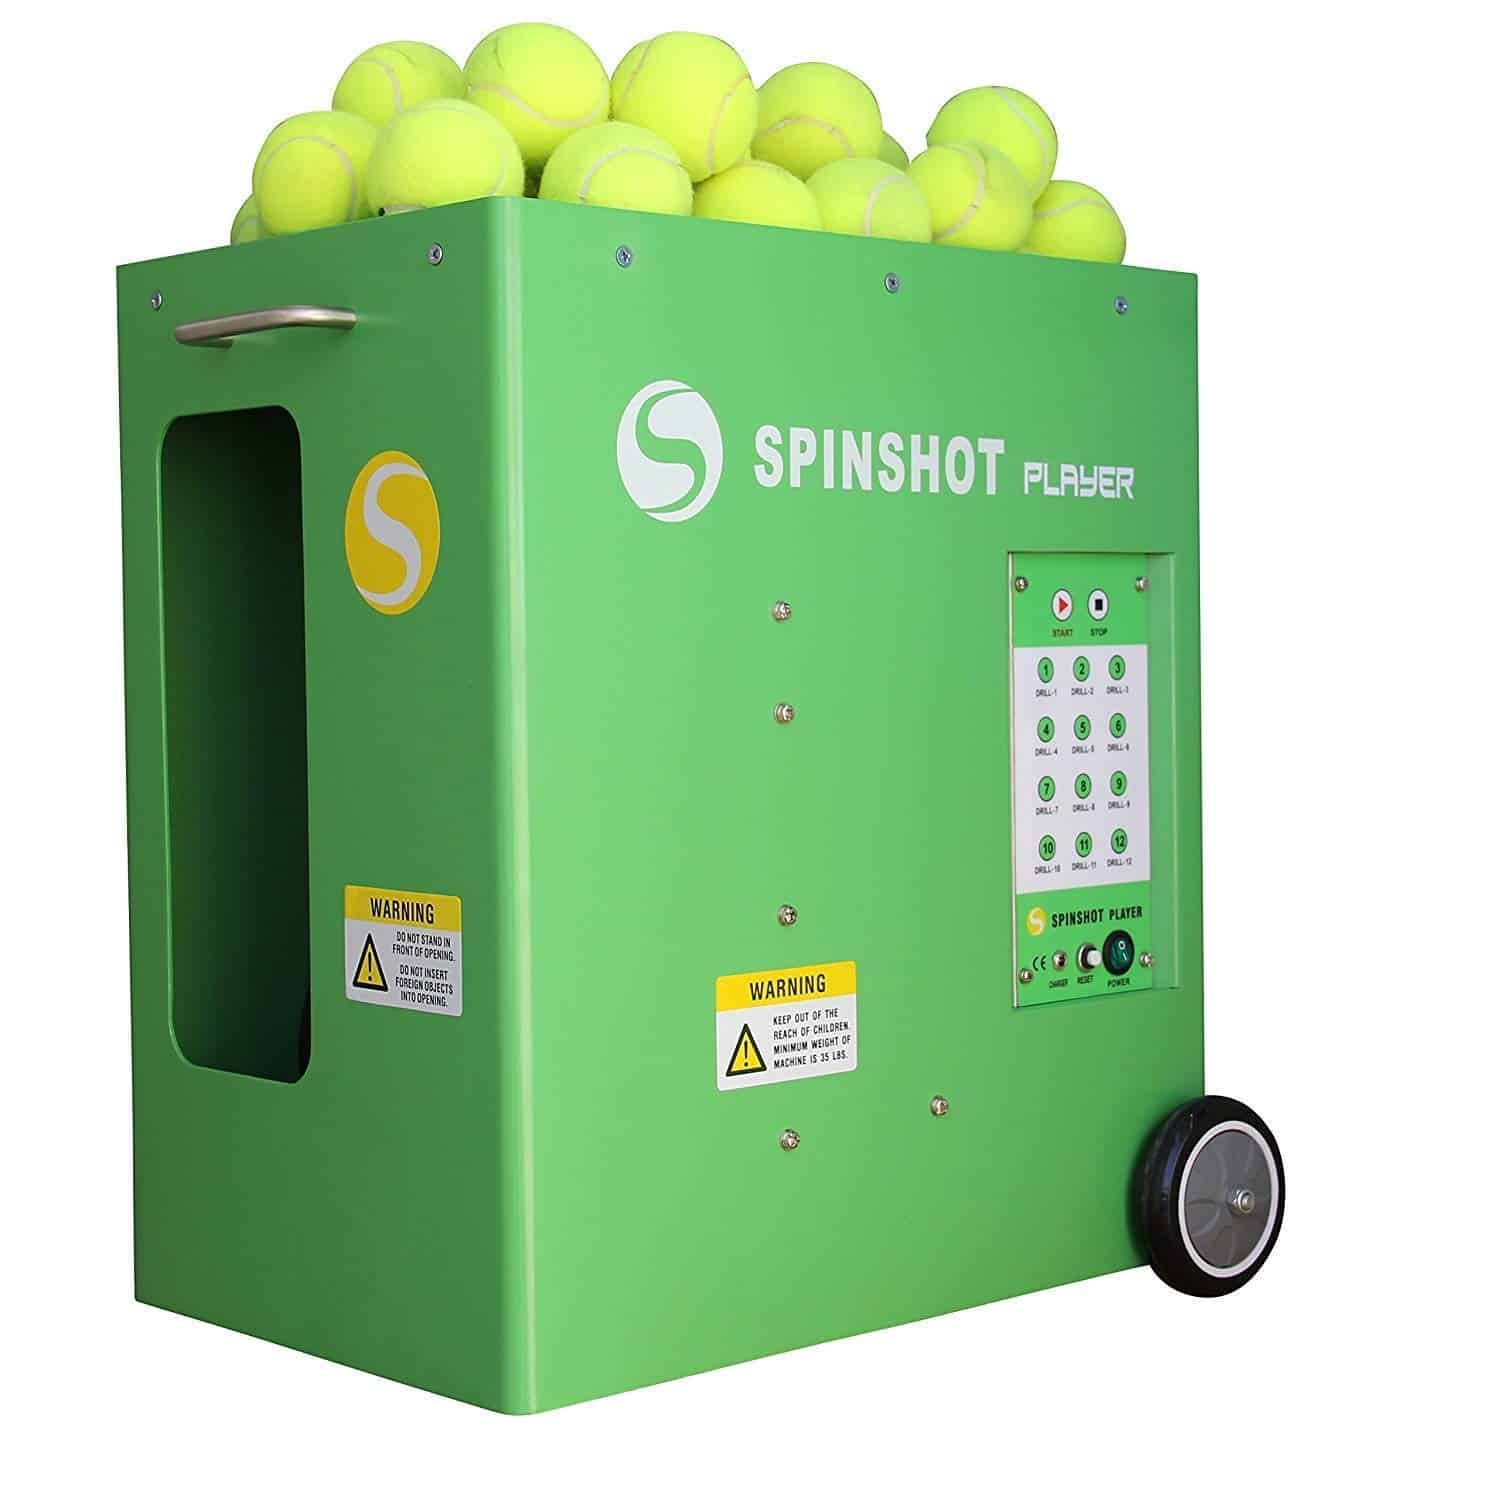 Spinshot-Player Tennis Ball Machine (Best Model to Improve Your Game